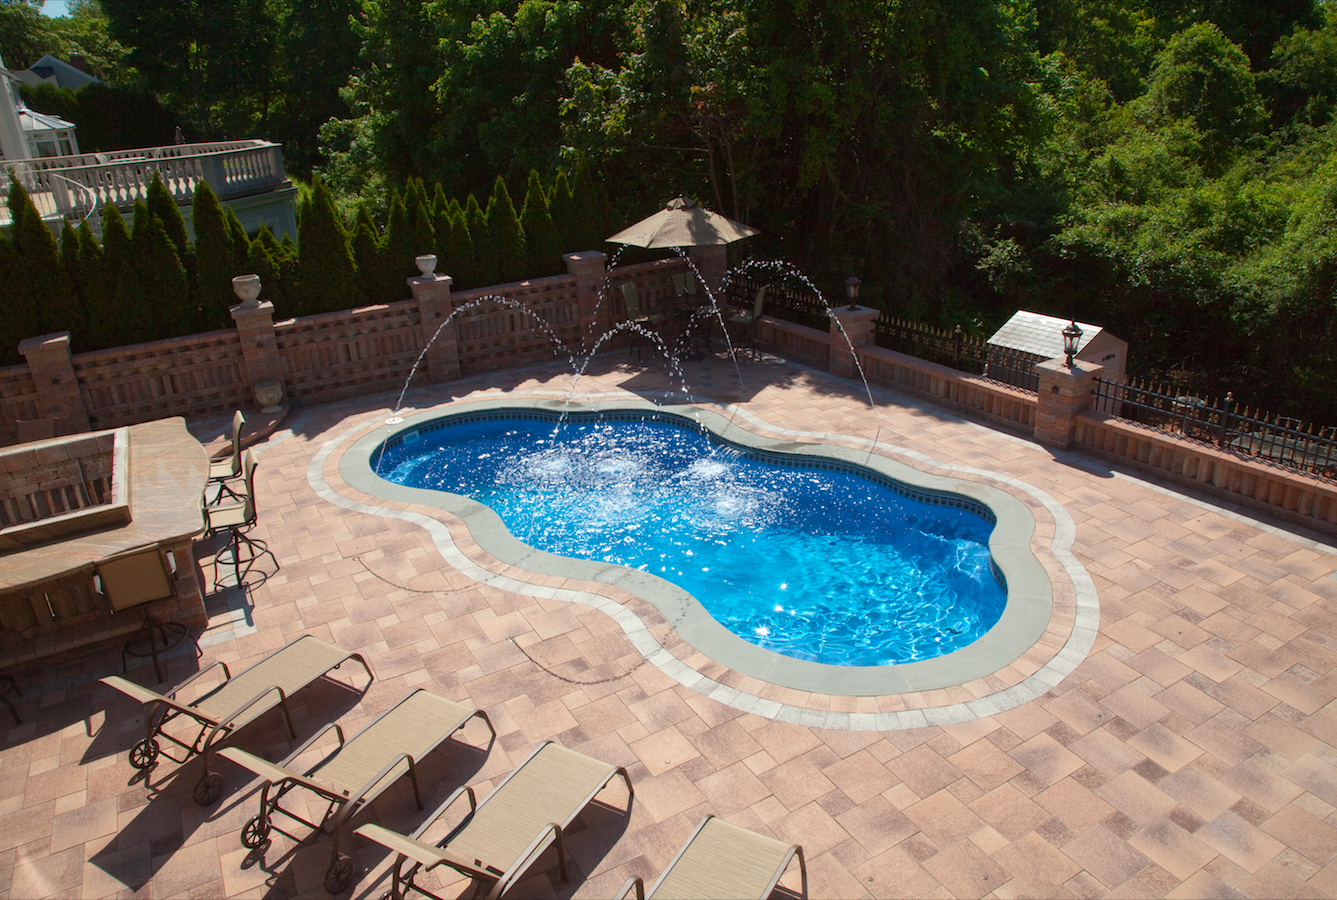 Deciding on Concrete Pavers for Your Pool Patio Installation Project in Millis, MA